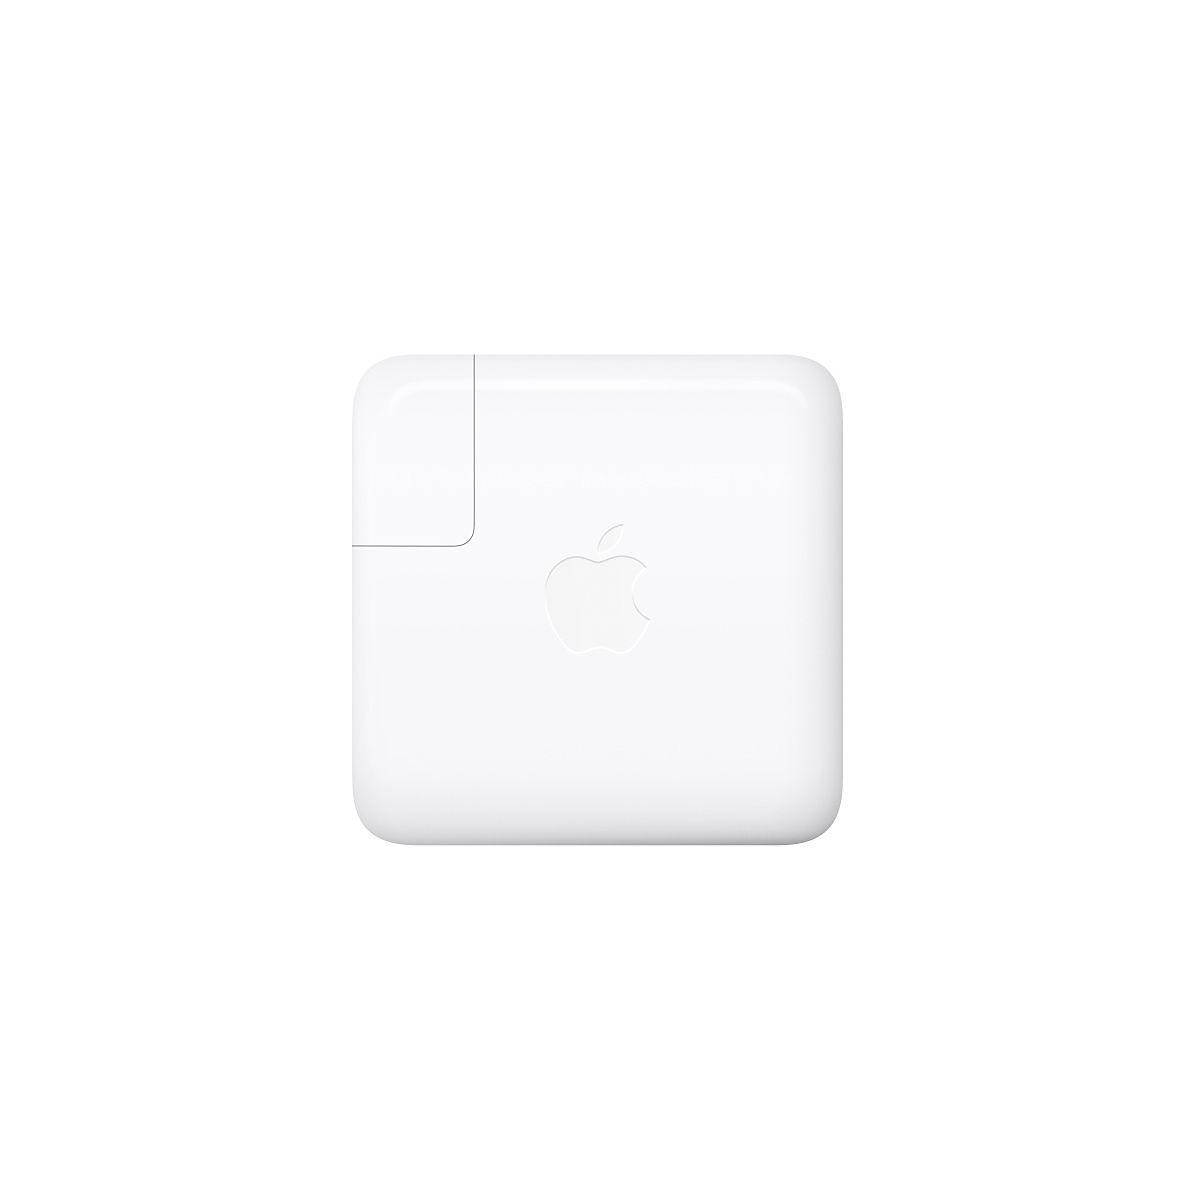 Alim apple usb-c 87w pour macbook pro 15